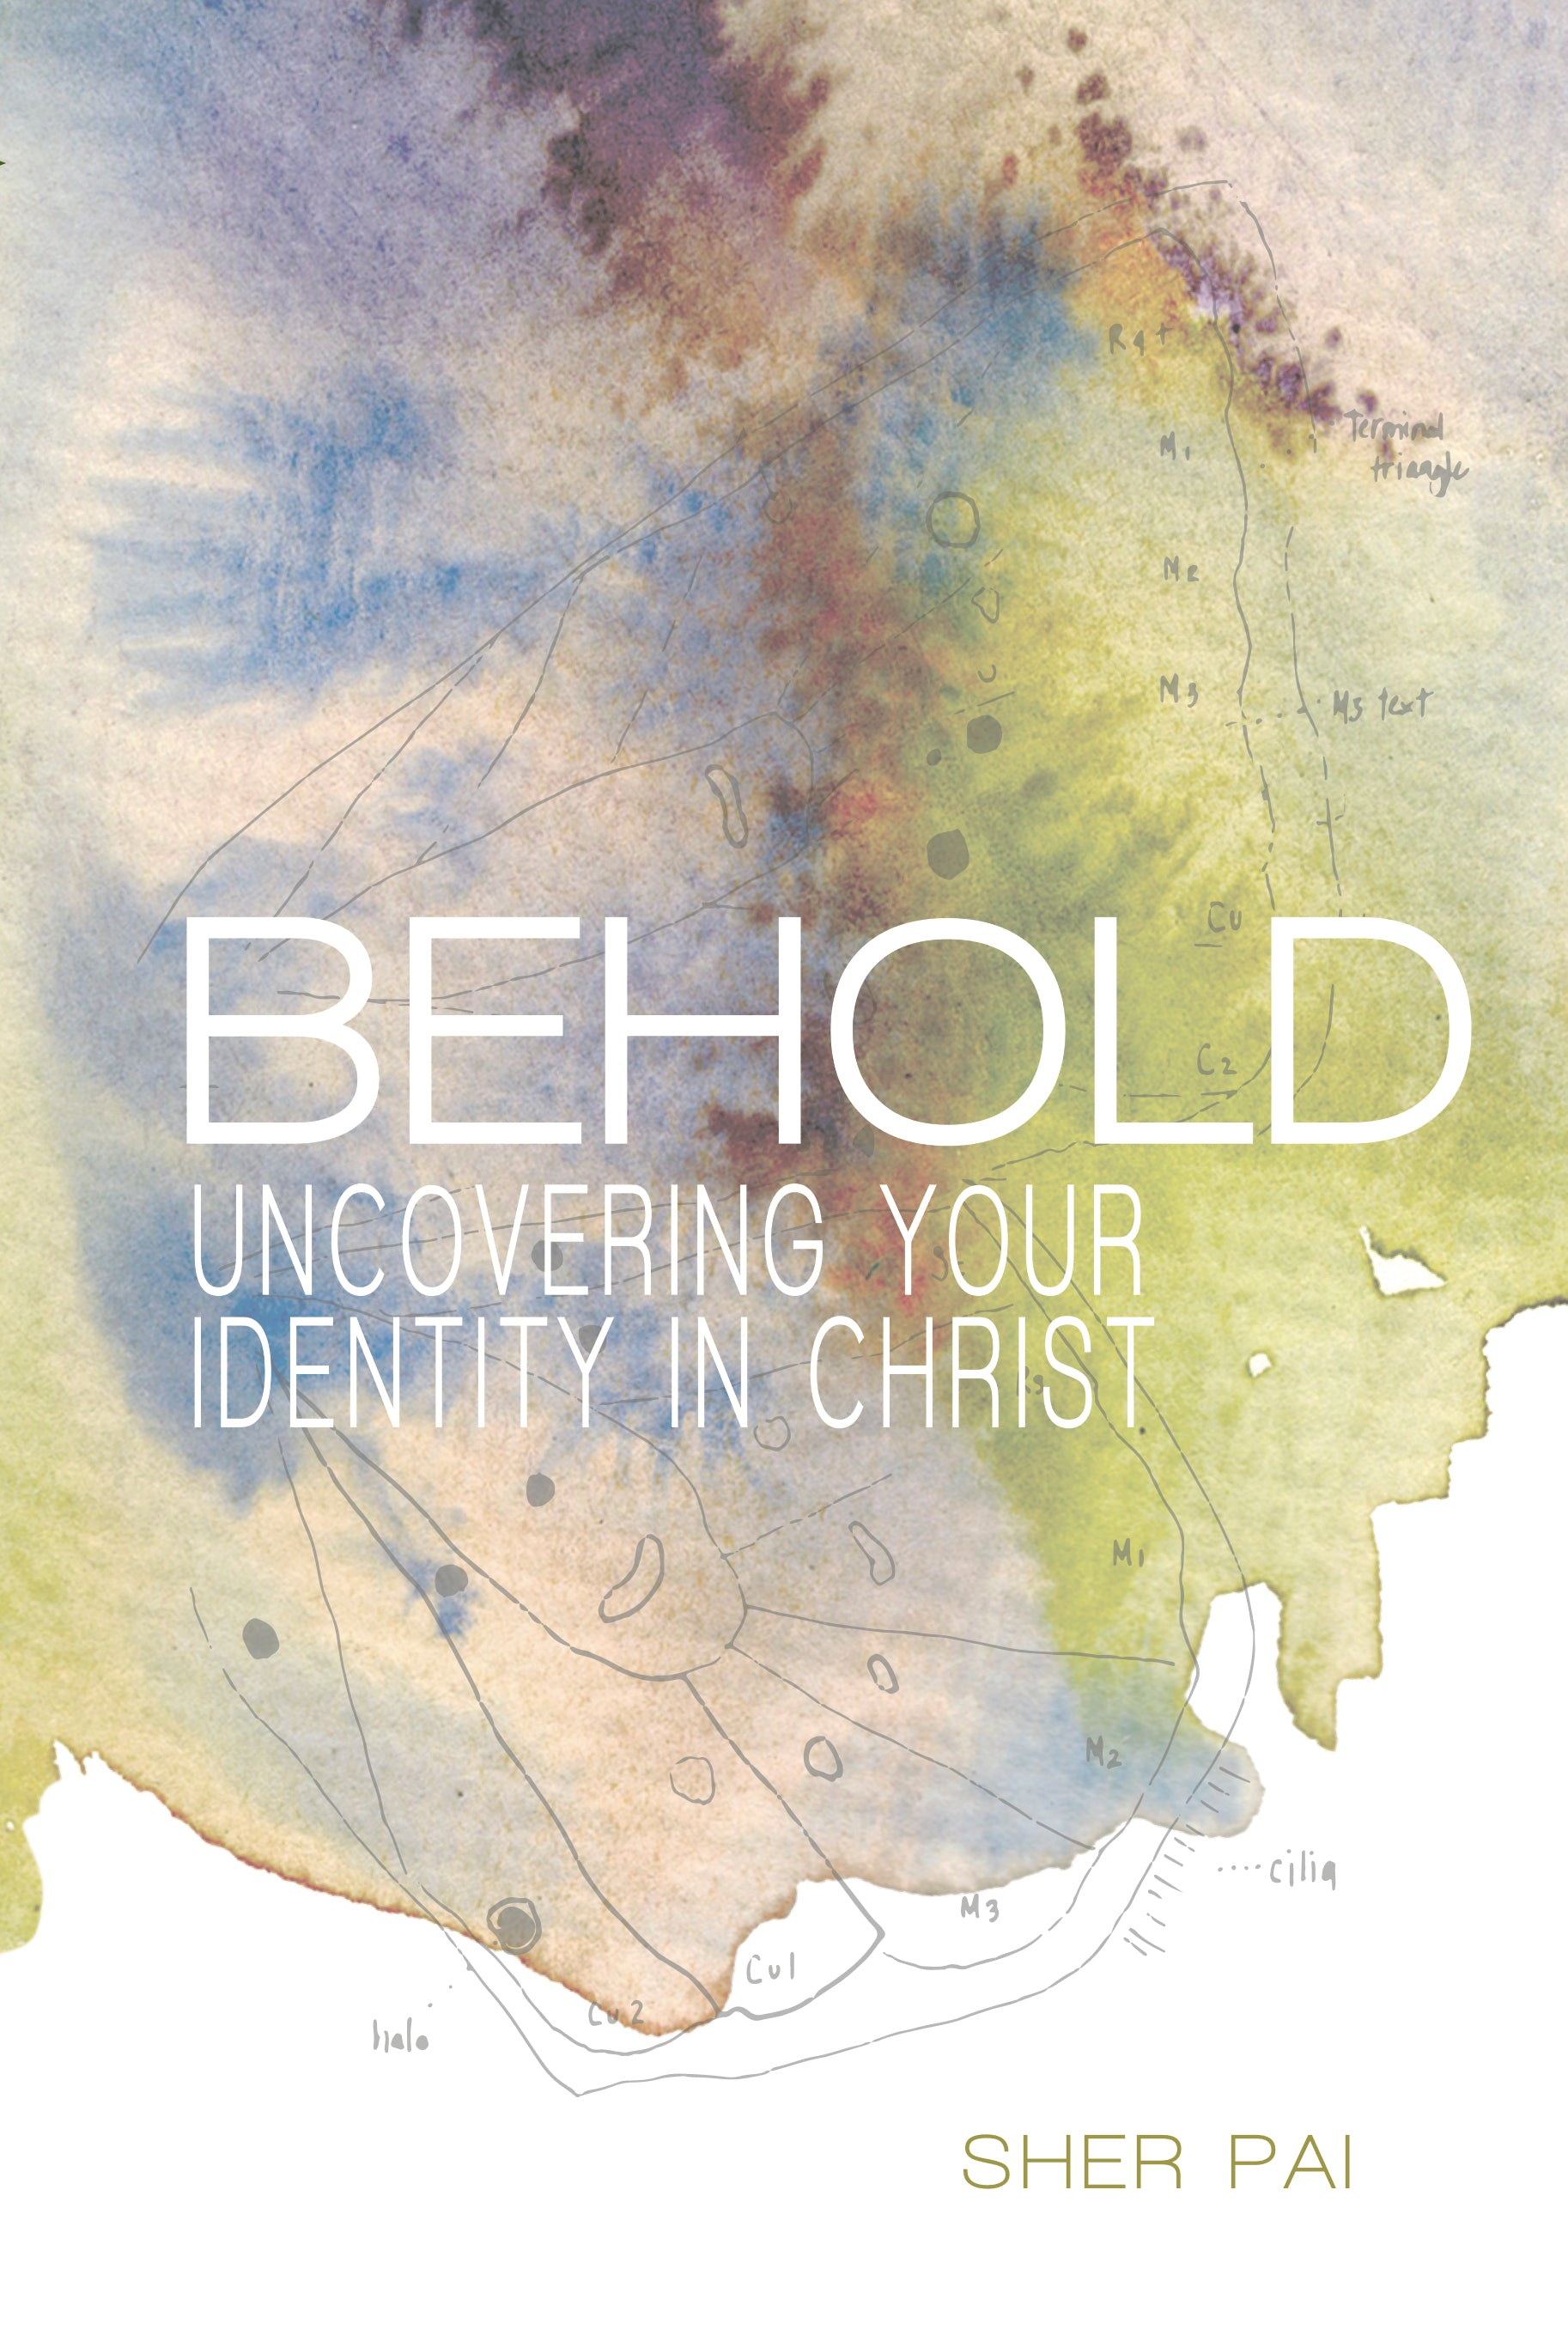 Behold: Uncovering Your Identity in Christ